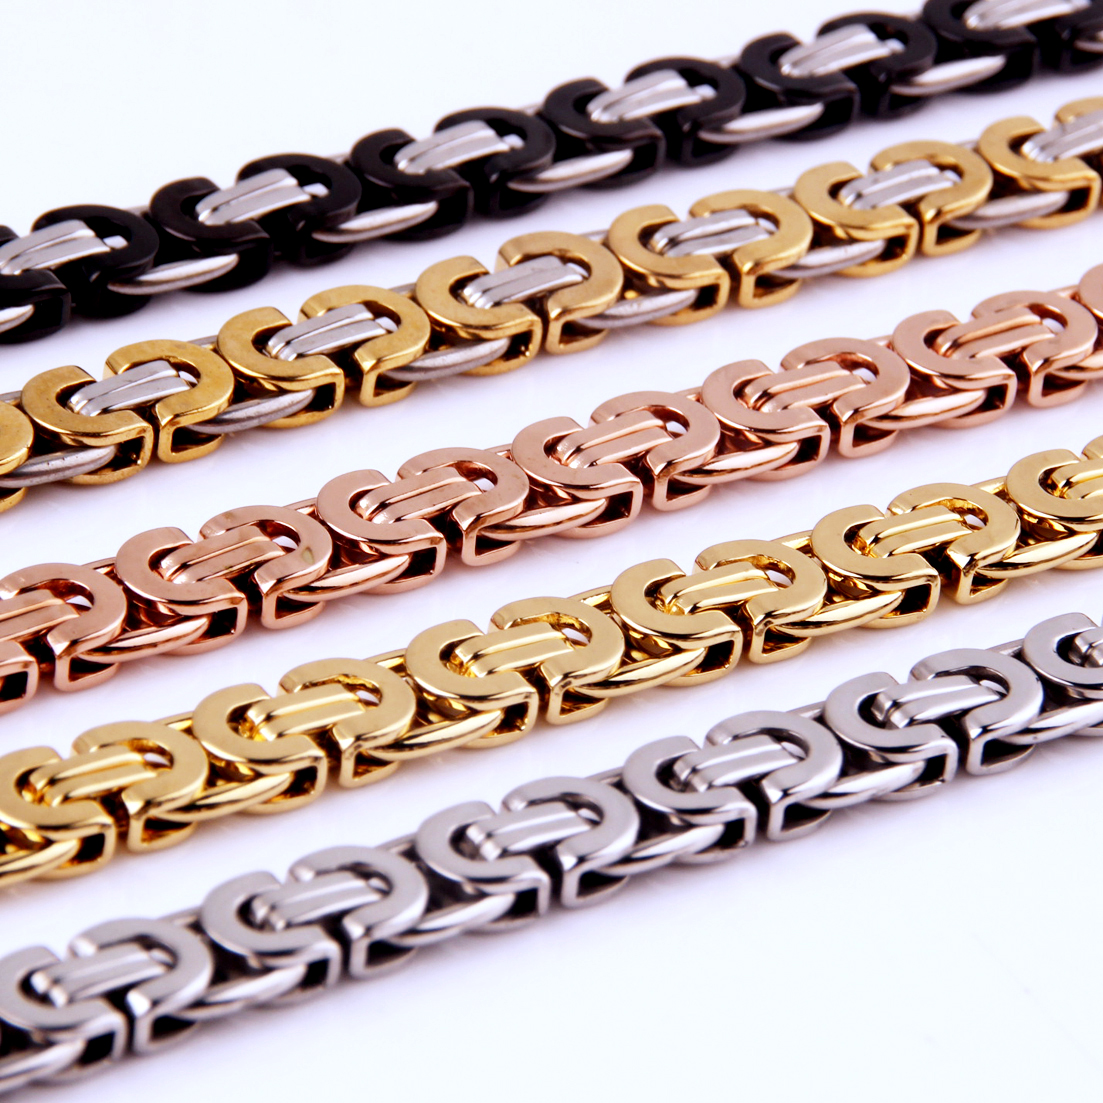 8mm Wide Silver Gold Black Color Stainless Steel Byzantine Box Chain Necklace Or Bracelet Mens 7 40 quot Free Choose Jewelry in Chain Necklaces from Jewelry amp Accessories